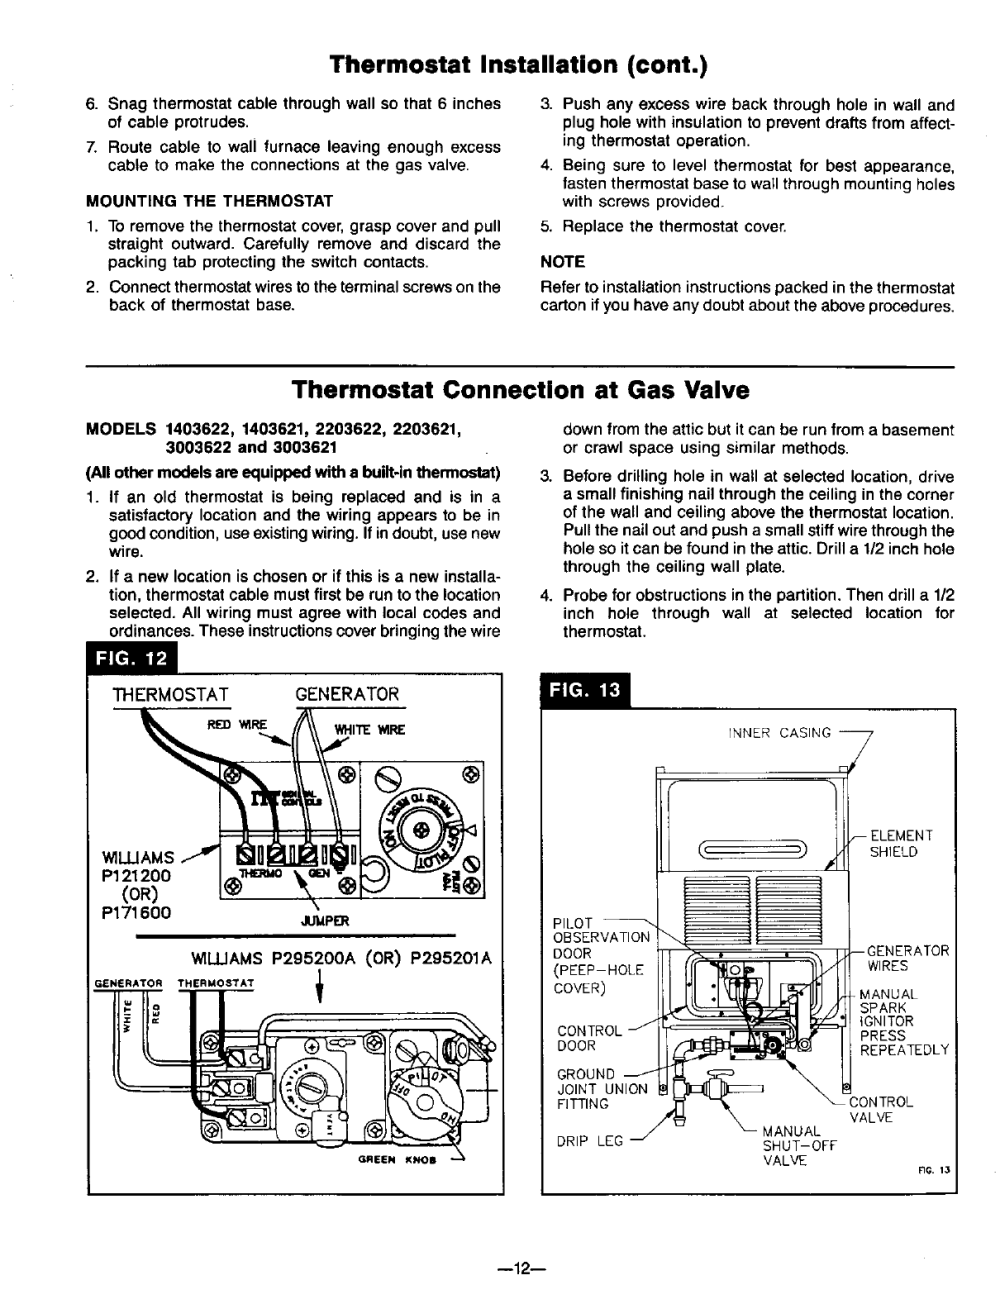 medium resolution of williams thermostat installation cont thermostat connection at gas valve 1